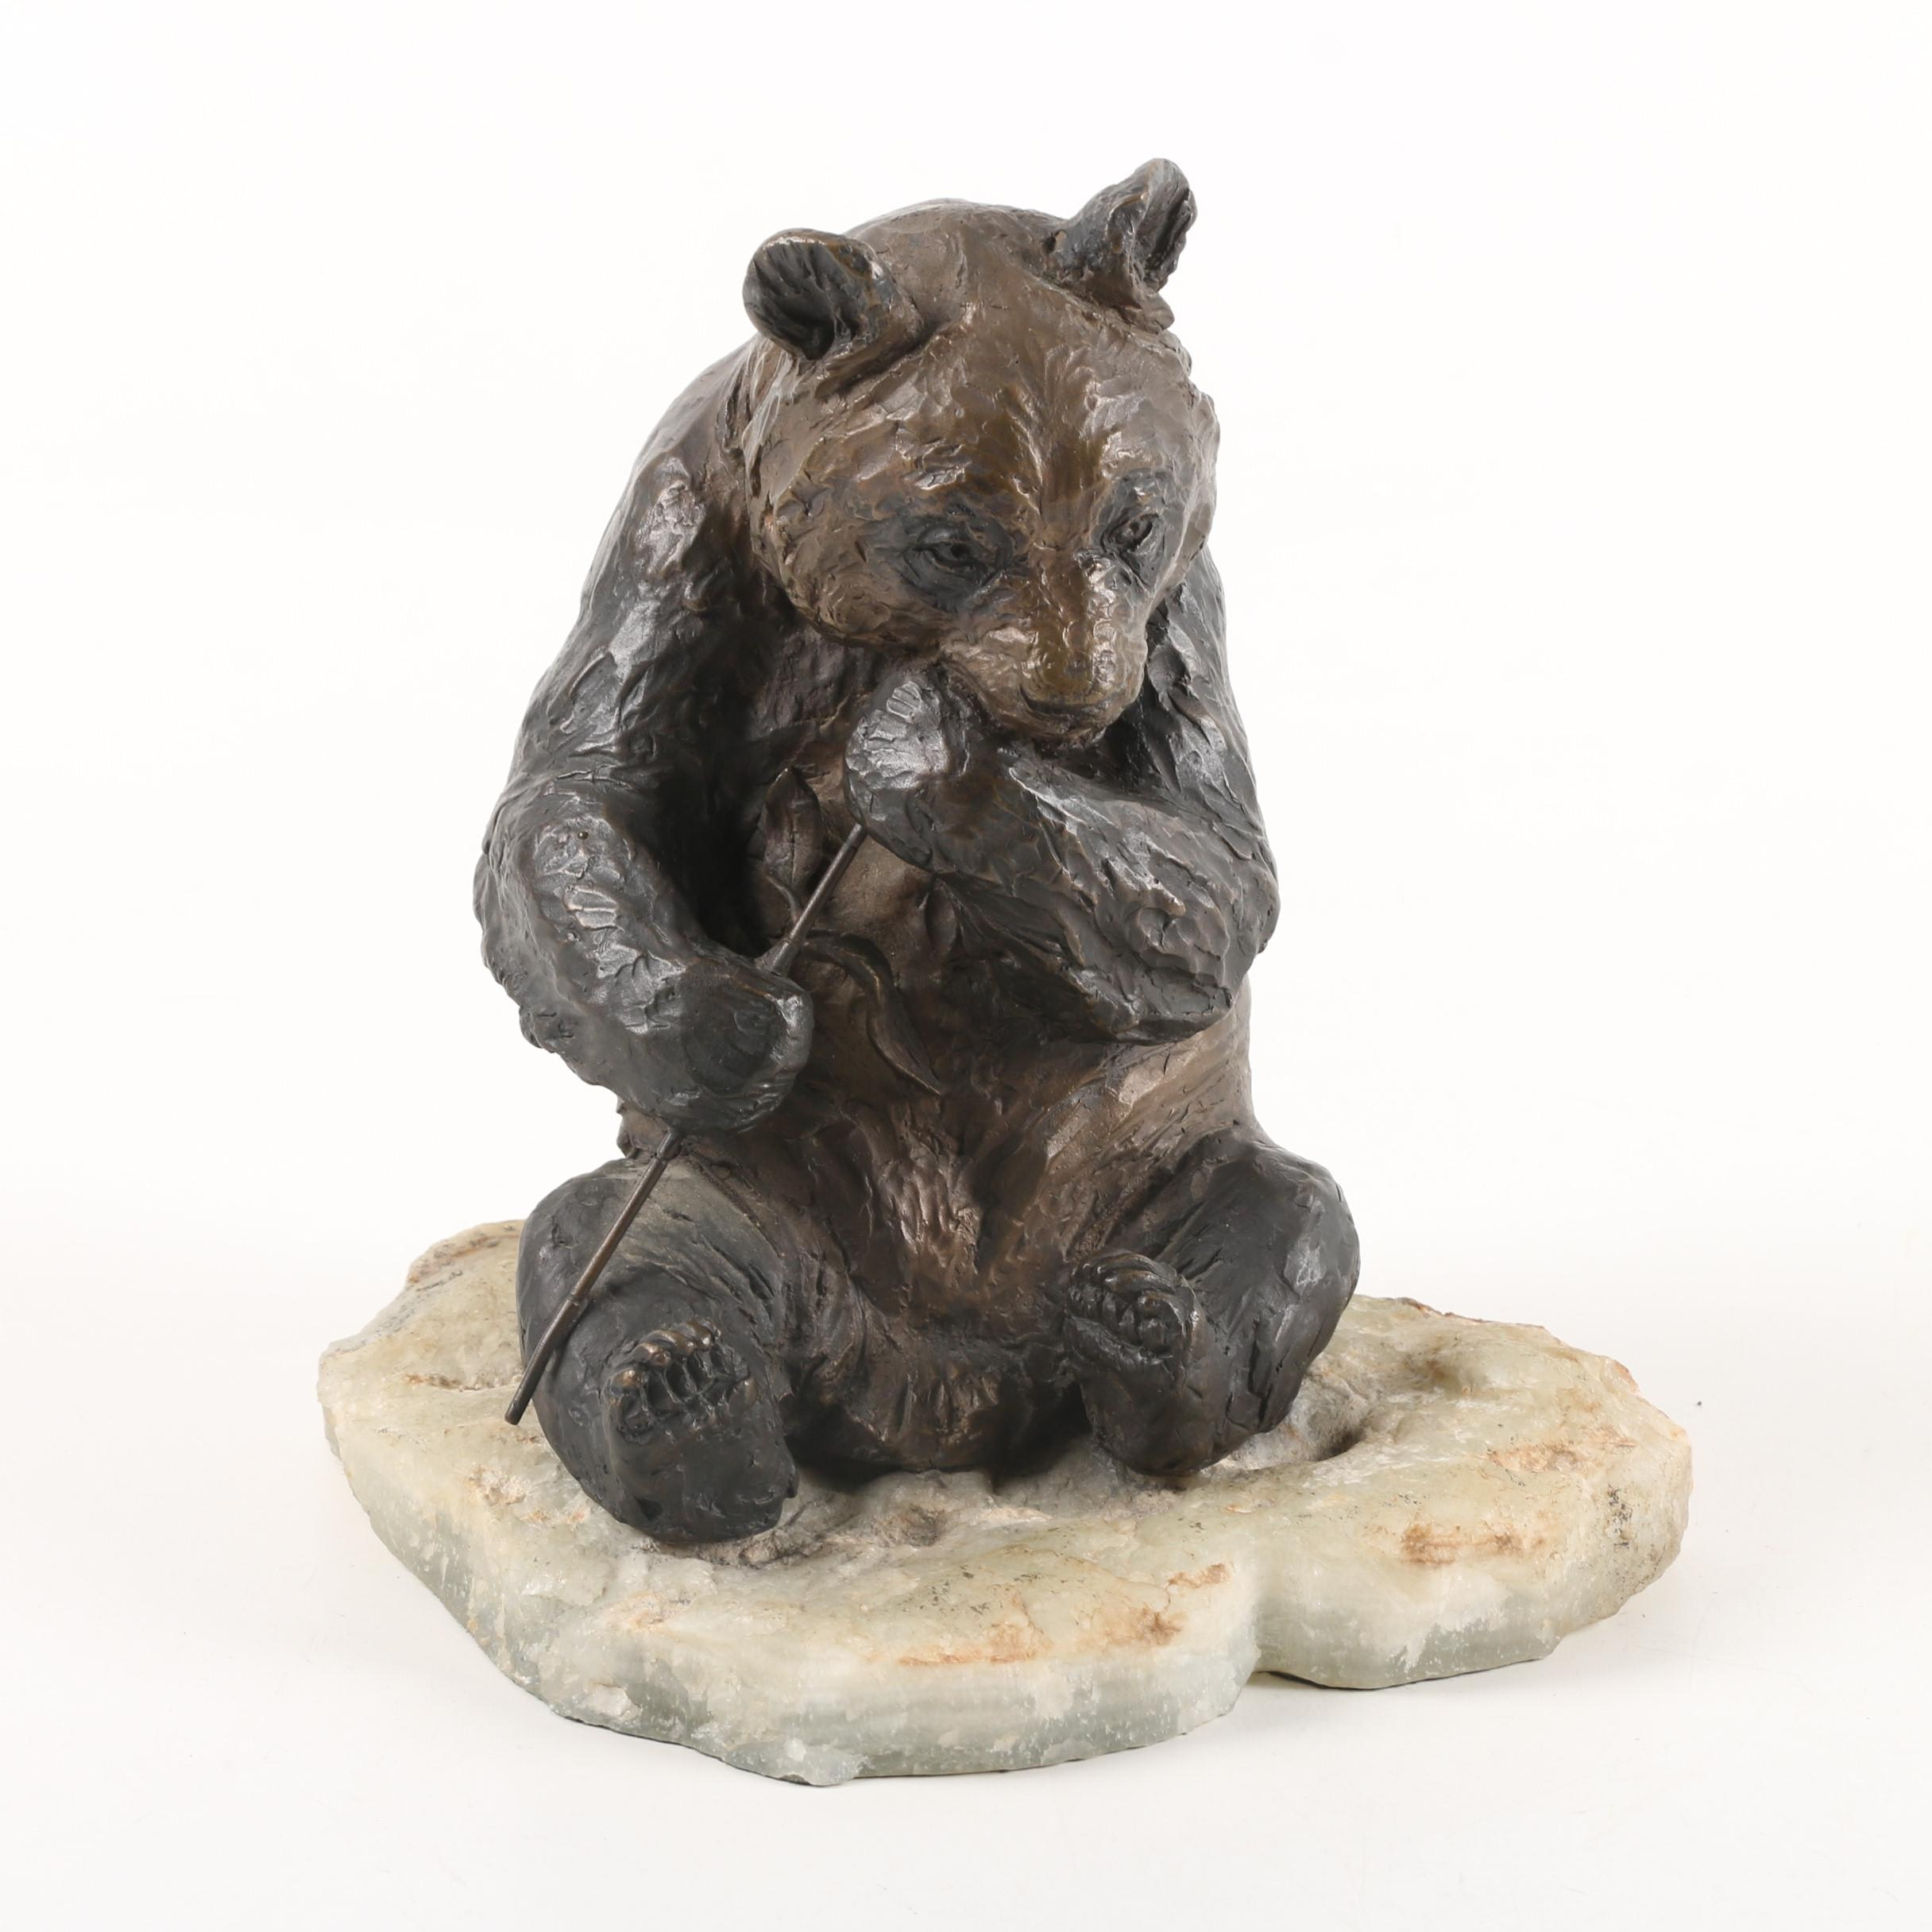 Limited Edition Bronze Tone Sculpture of Panda on Calcite Base